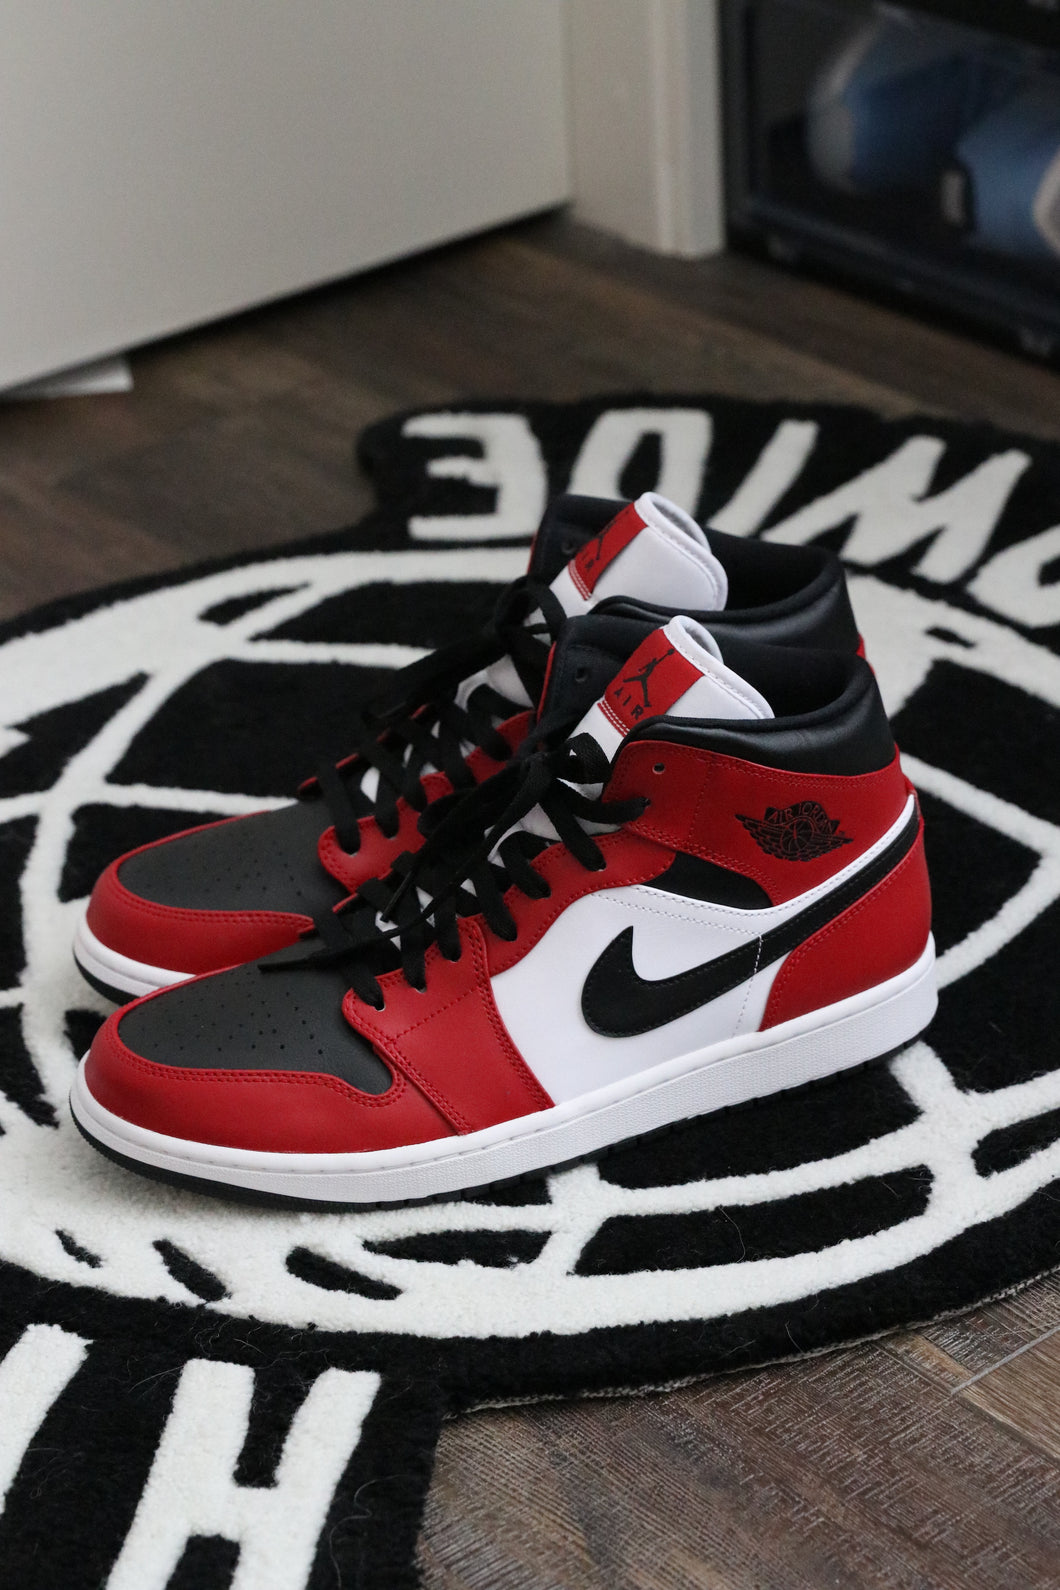 Air Jordan 1 Chicago Mid | New | Size 12